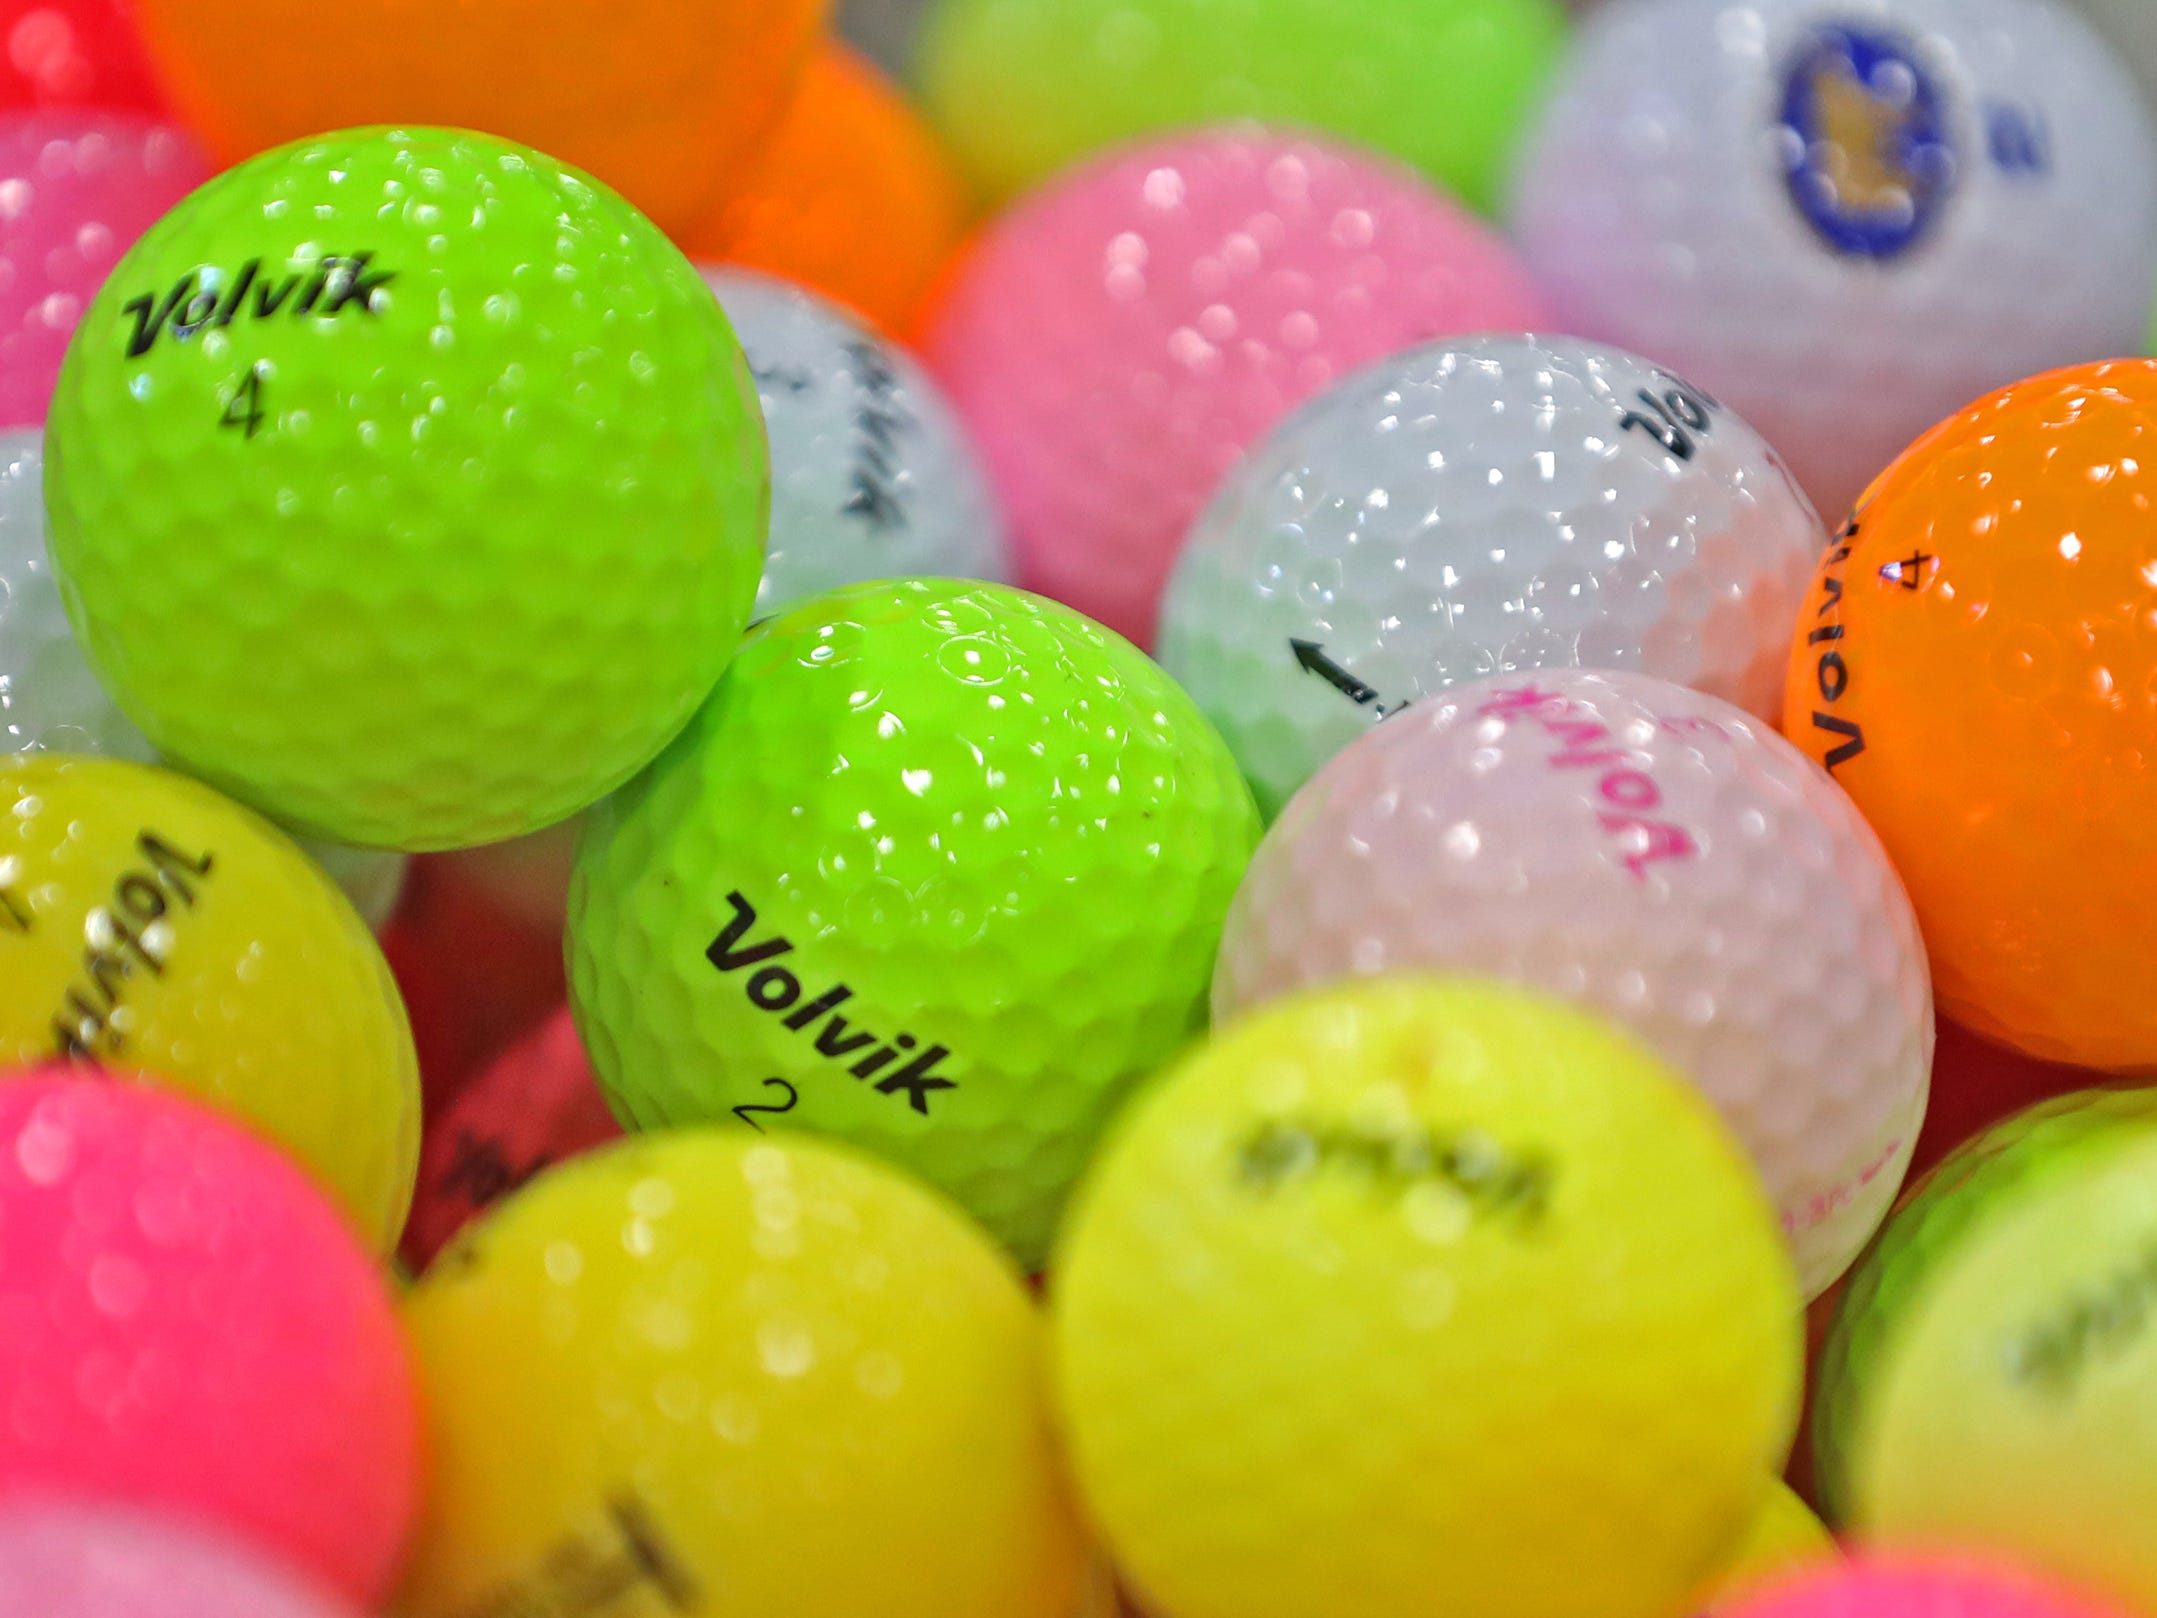 Golf balls of all colors are for sale at the Sharp Golf Ball Co. booth, during the Indy Golf Expo at the Indiana State Fairgrounds, Sunday, Jan. 20, 2019.